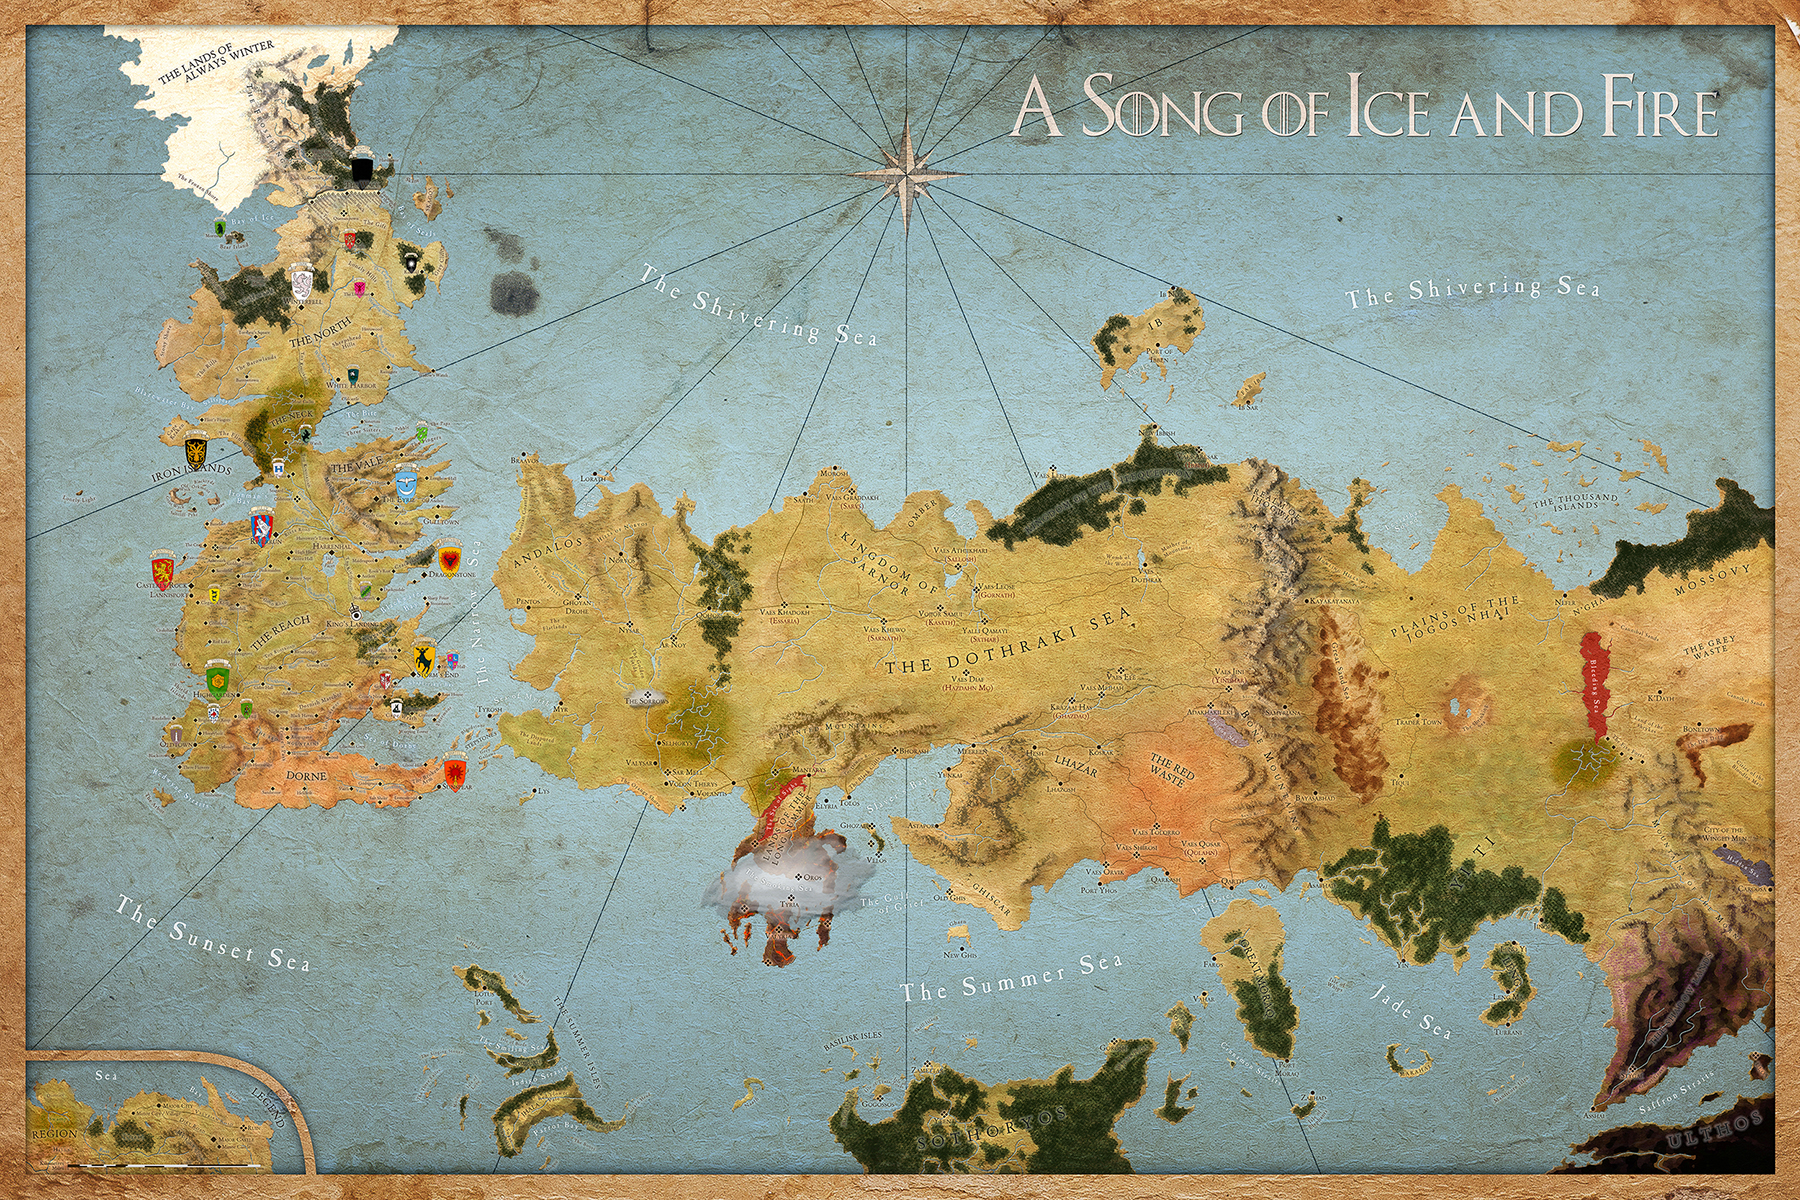 map-a-song-of-ice-and-fire-smaller.jpg